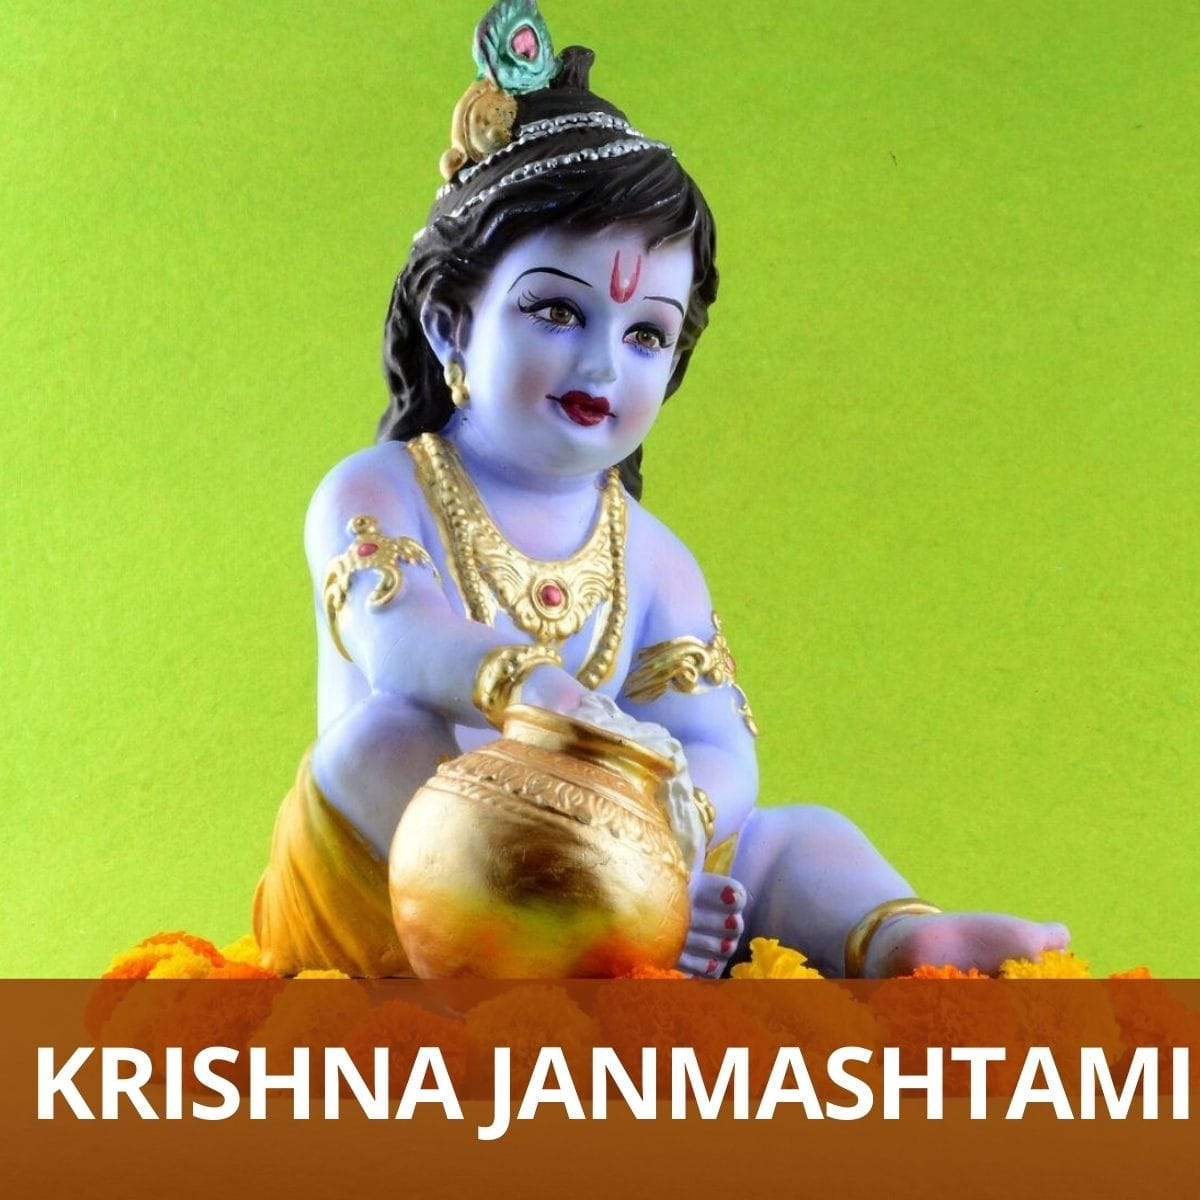 Lord krishna idol with text krishna janmashtami at the bottom with maroon background